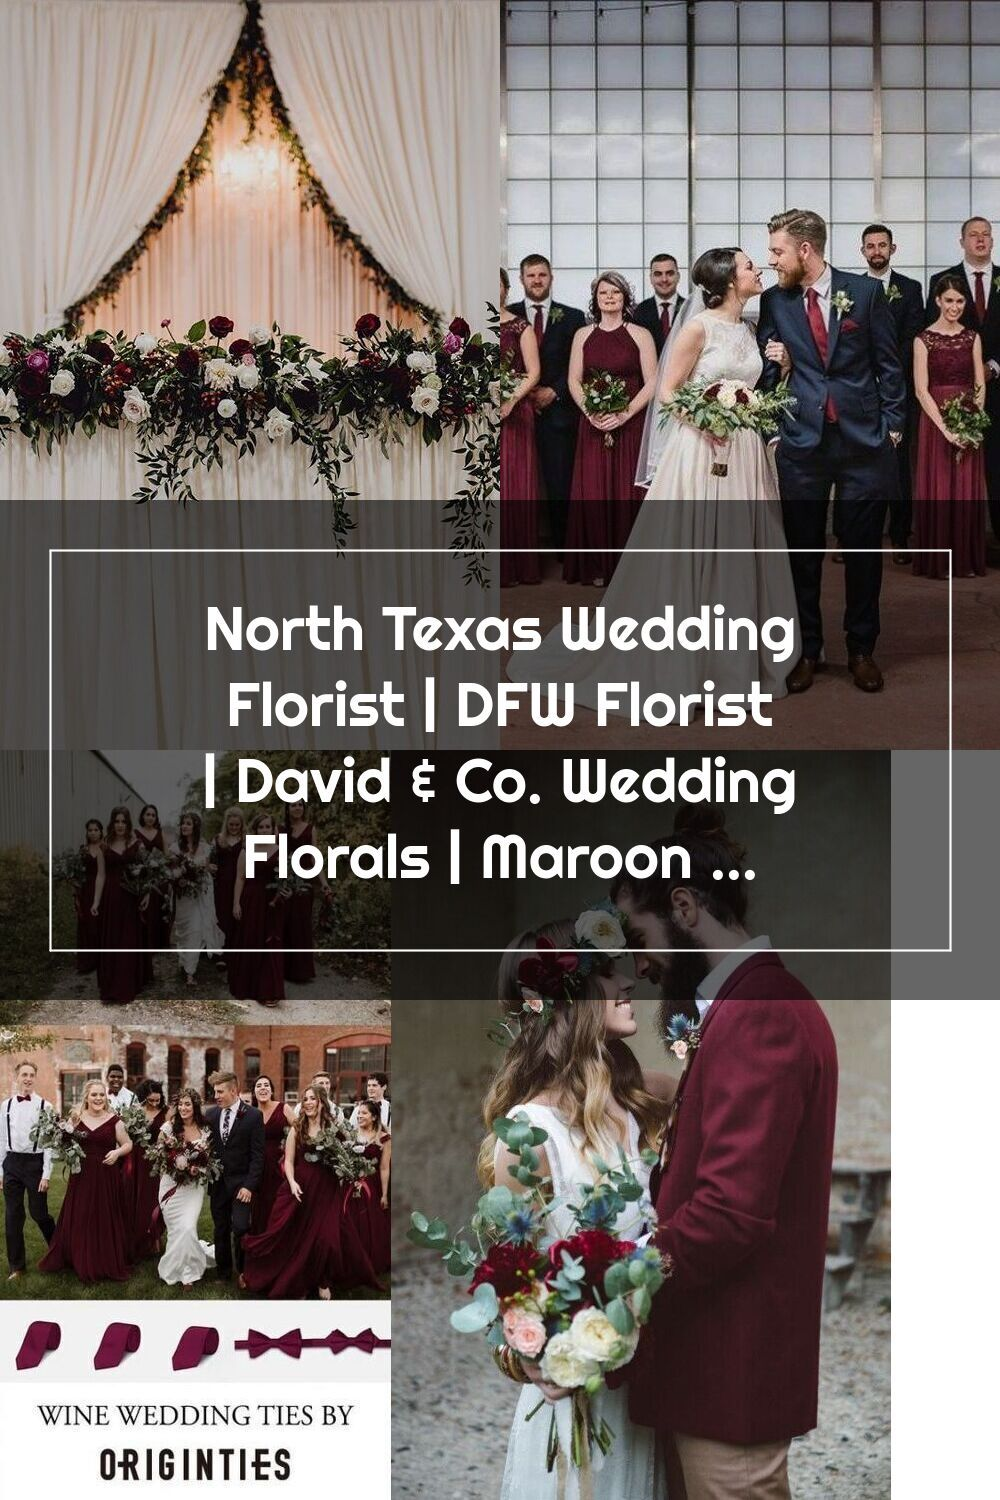 North Texas Wedding Florist Dfw Florist David Co Wedding Florals M En 2020